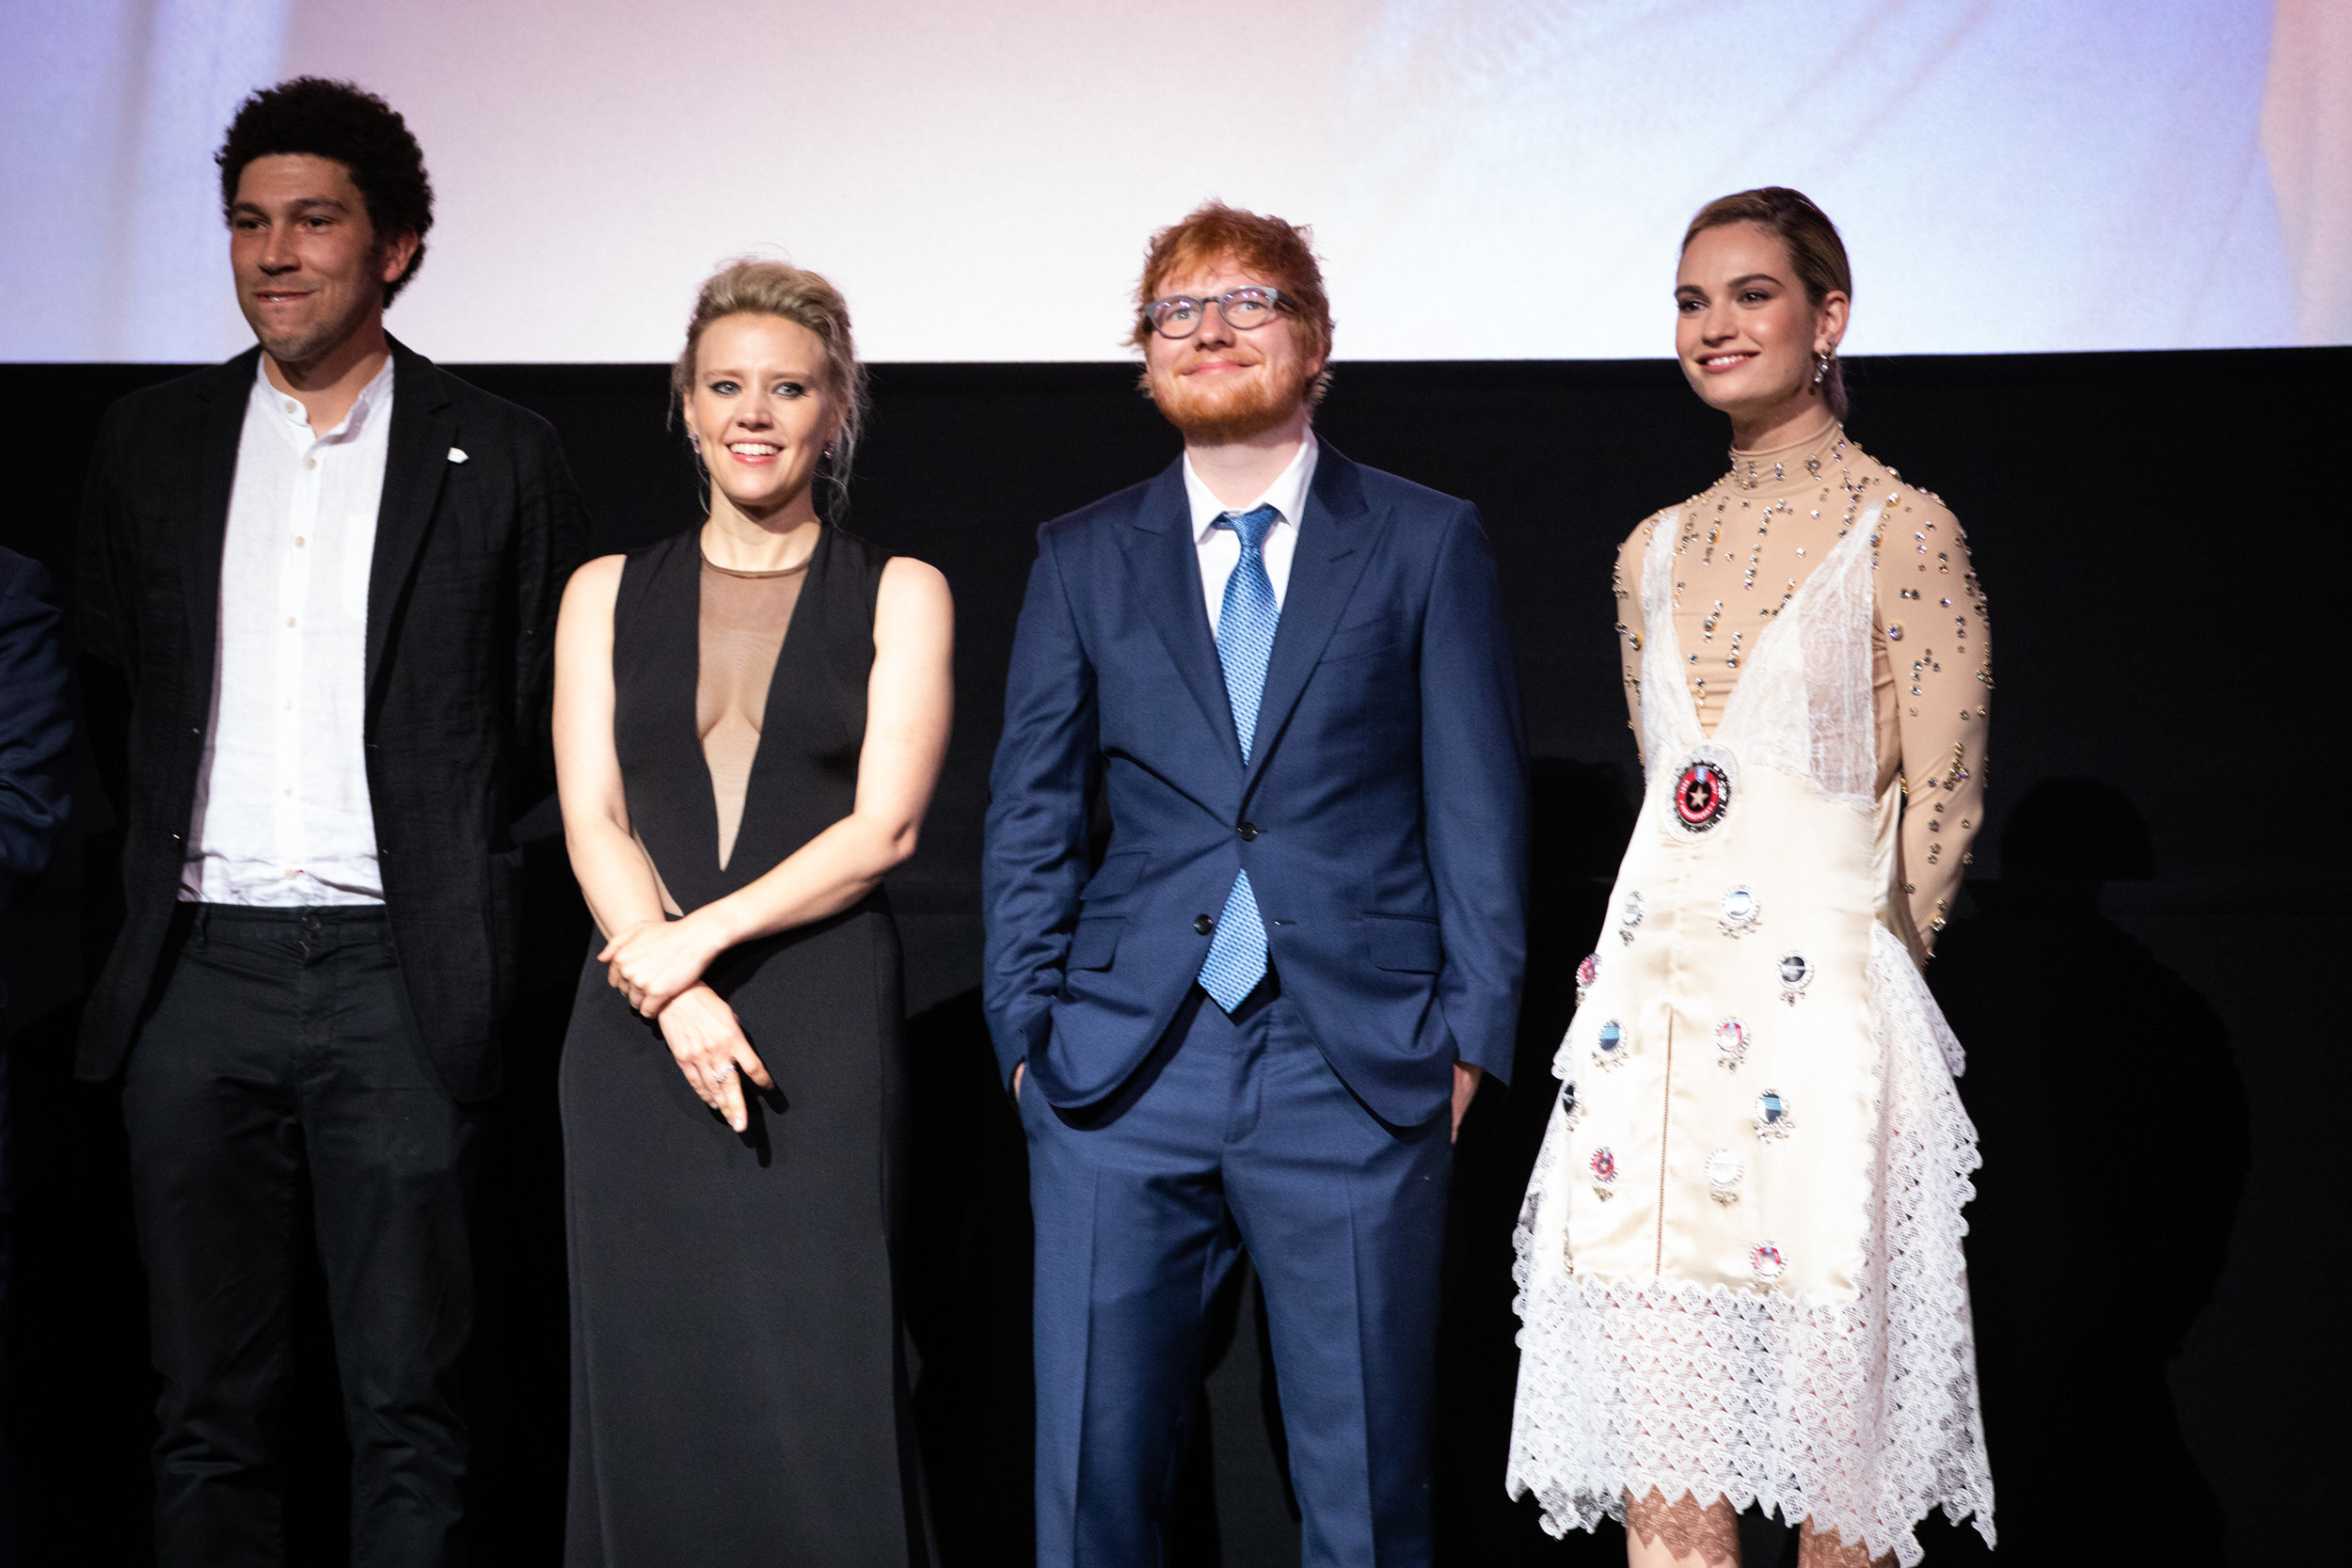 Joel Fry, Kate McKinnon, Ed Sheeran and Lily James at the London Premiere (Credit: James Gillham / StillMoving.net)